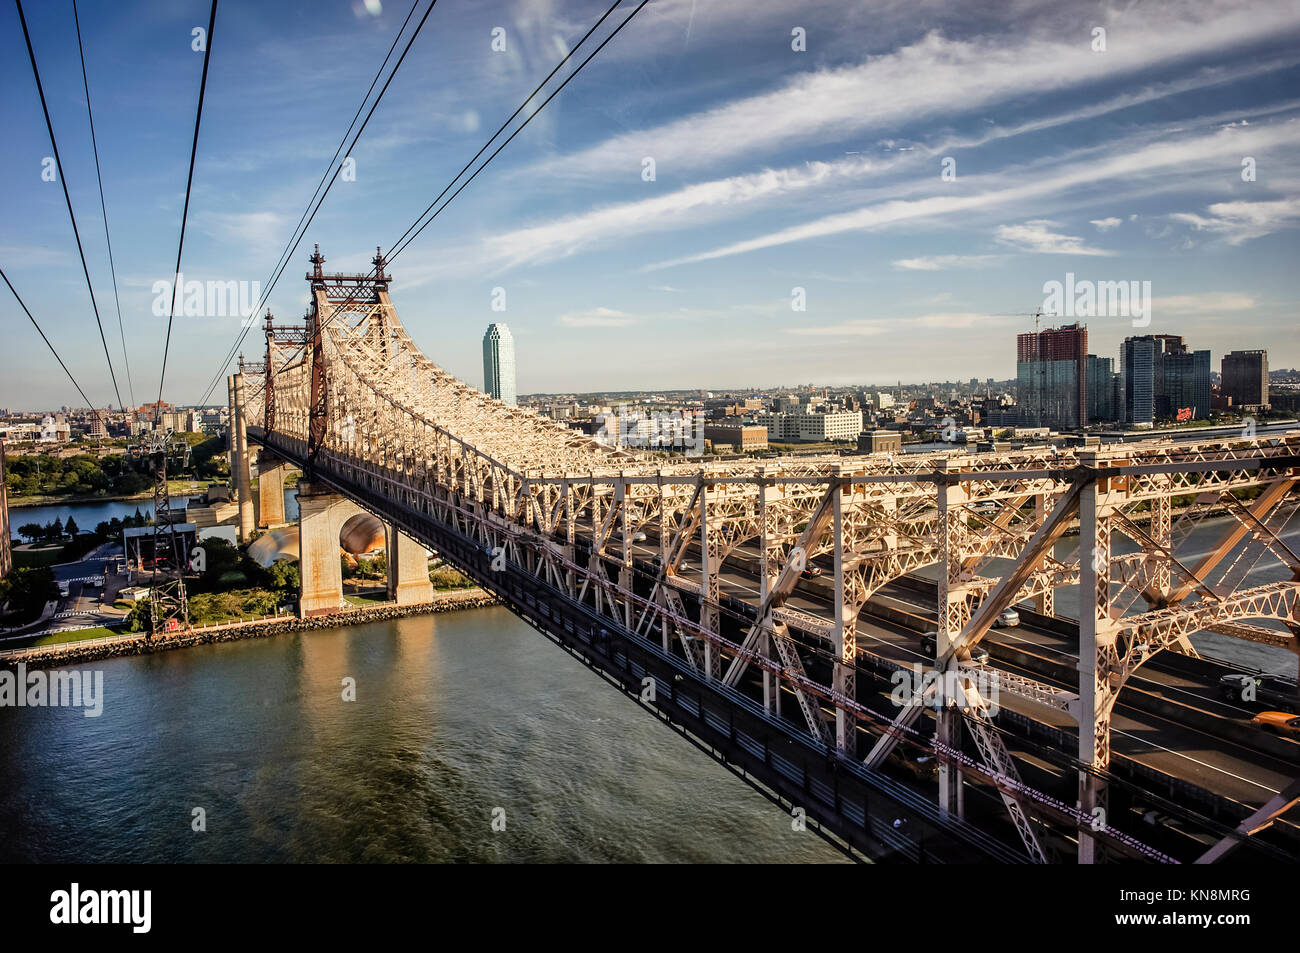 Queensboro bridge to Roosevelt Island, Manhattan, NYC, USA - Stock Image